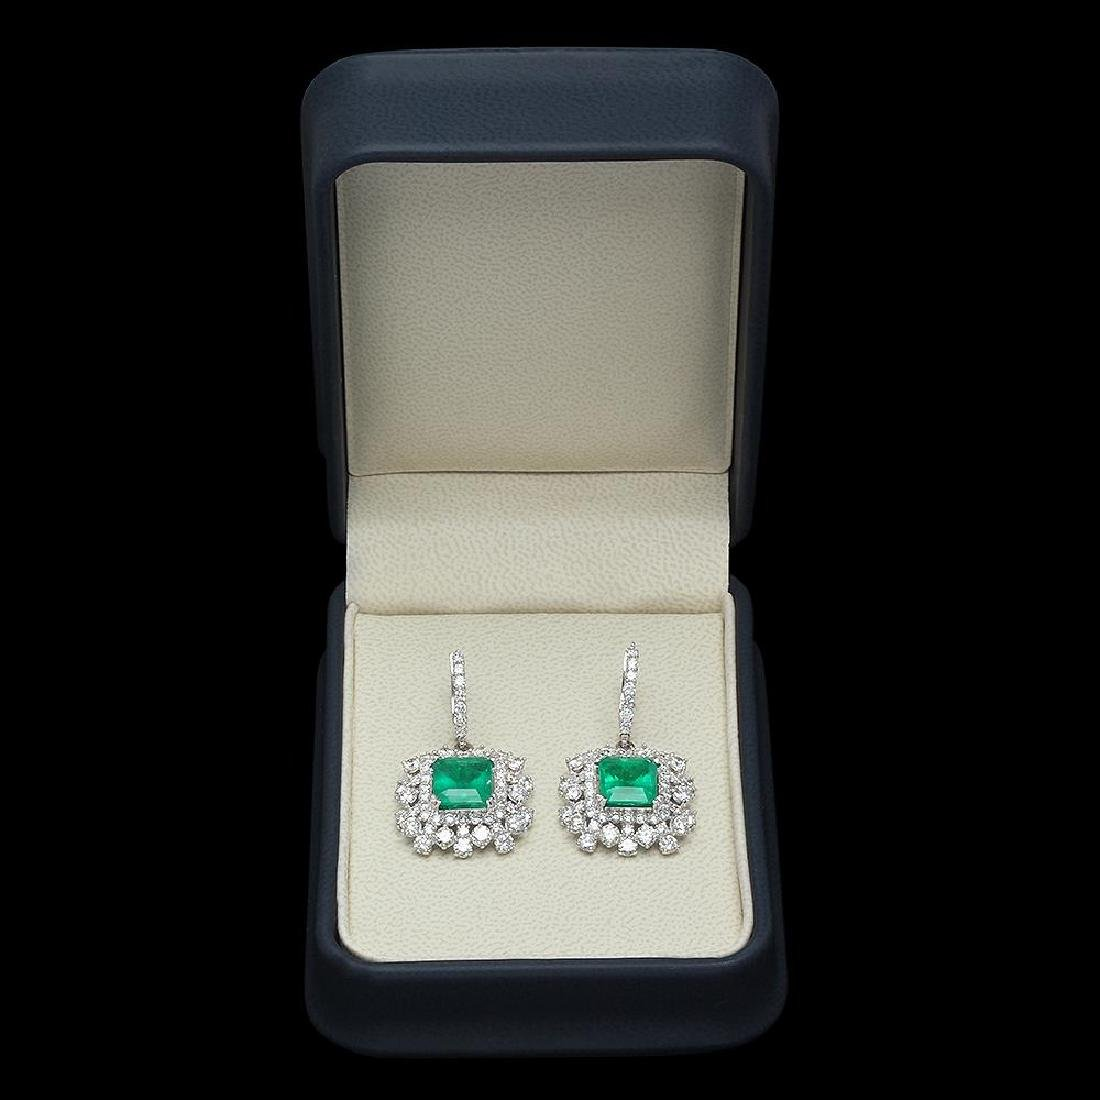 14K Gold 5.68ct Emerald 5.75ct Diamond Earrings - 3